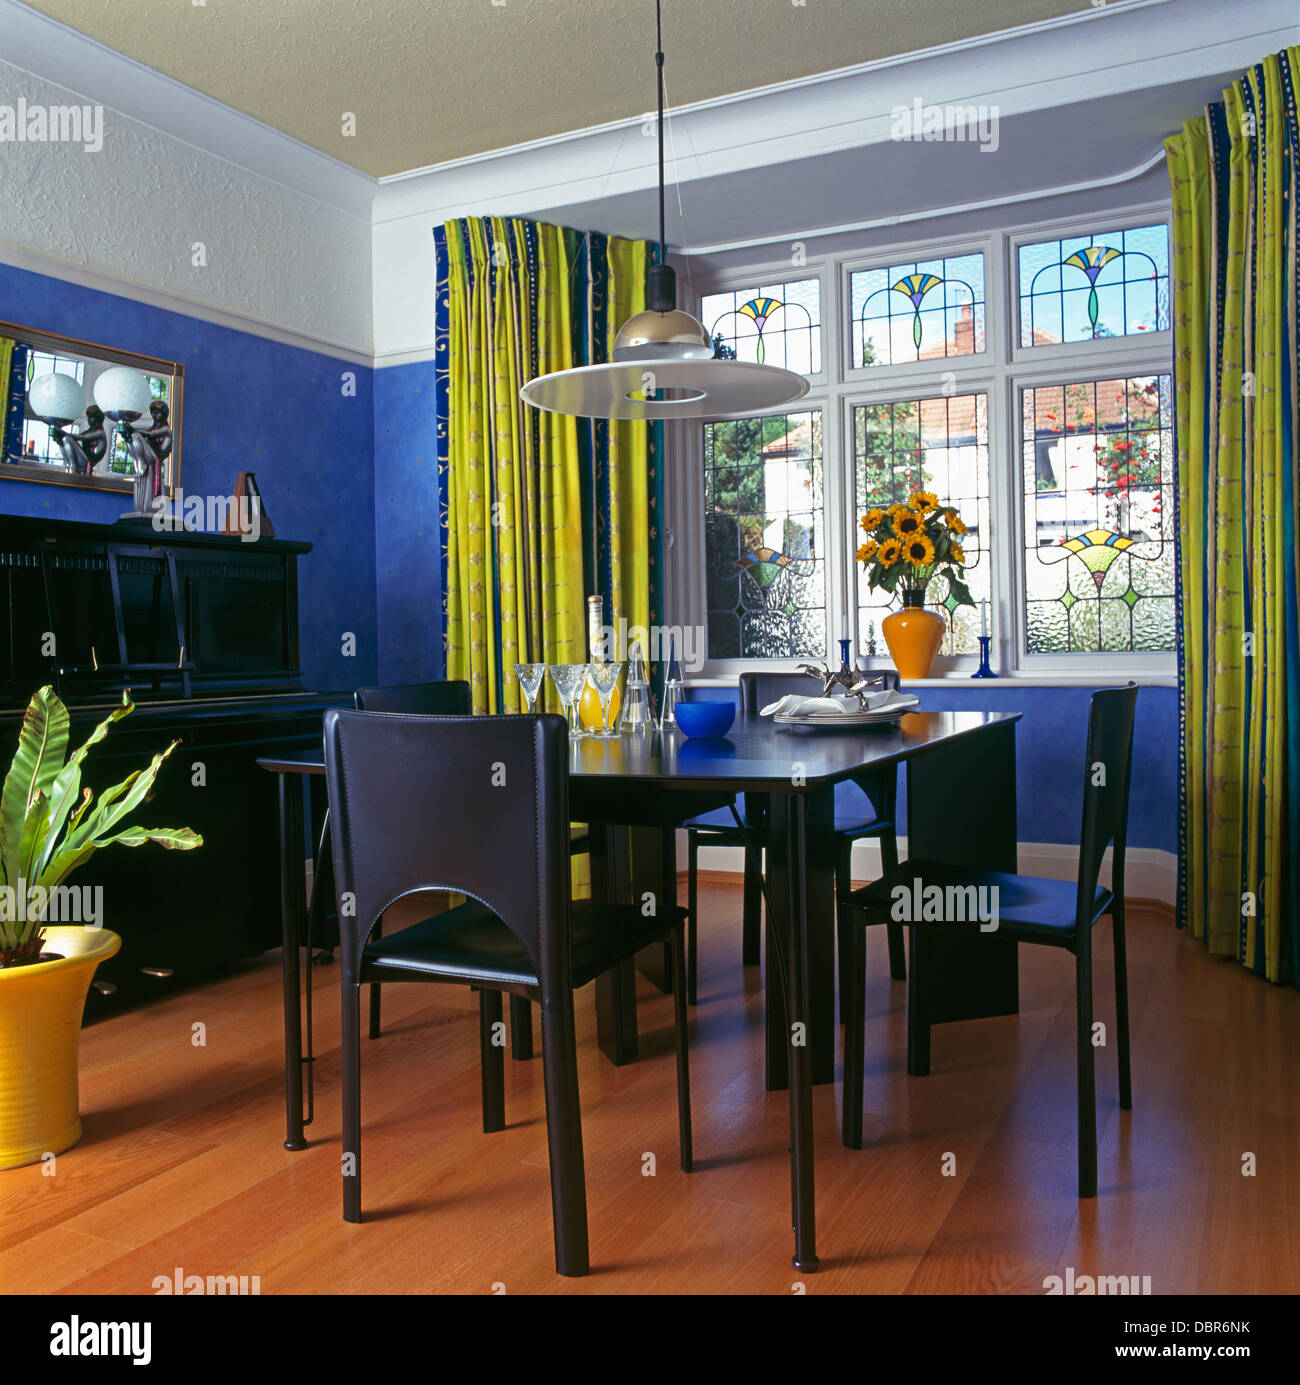 green dining room furniture. Disc Light Above Black Chairs And Table In Modern Blue Dining Room With Lime-green Curtains On Stained Glass Windows Green Furniture